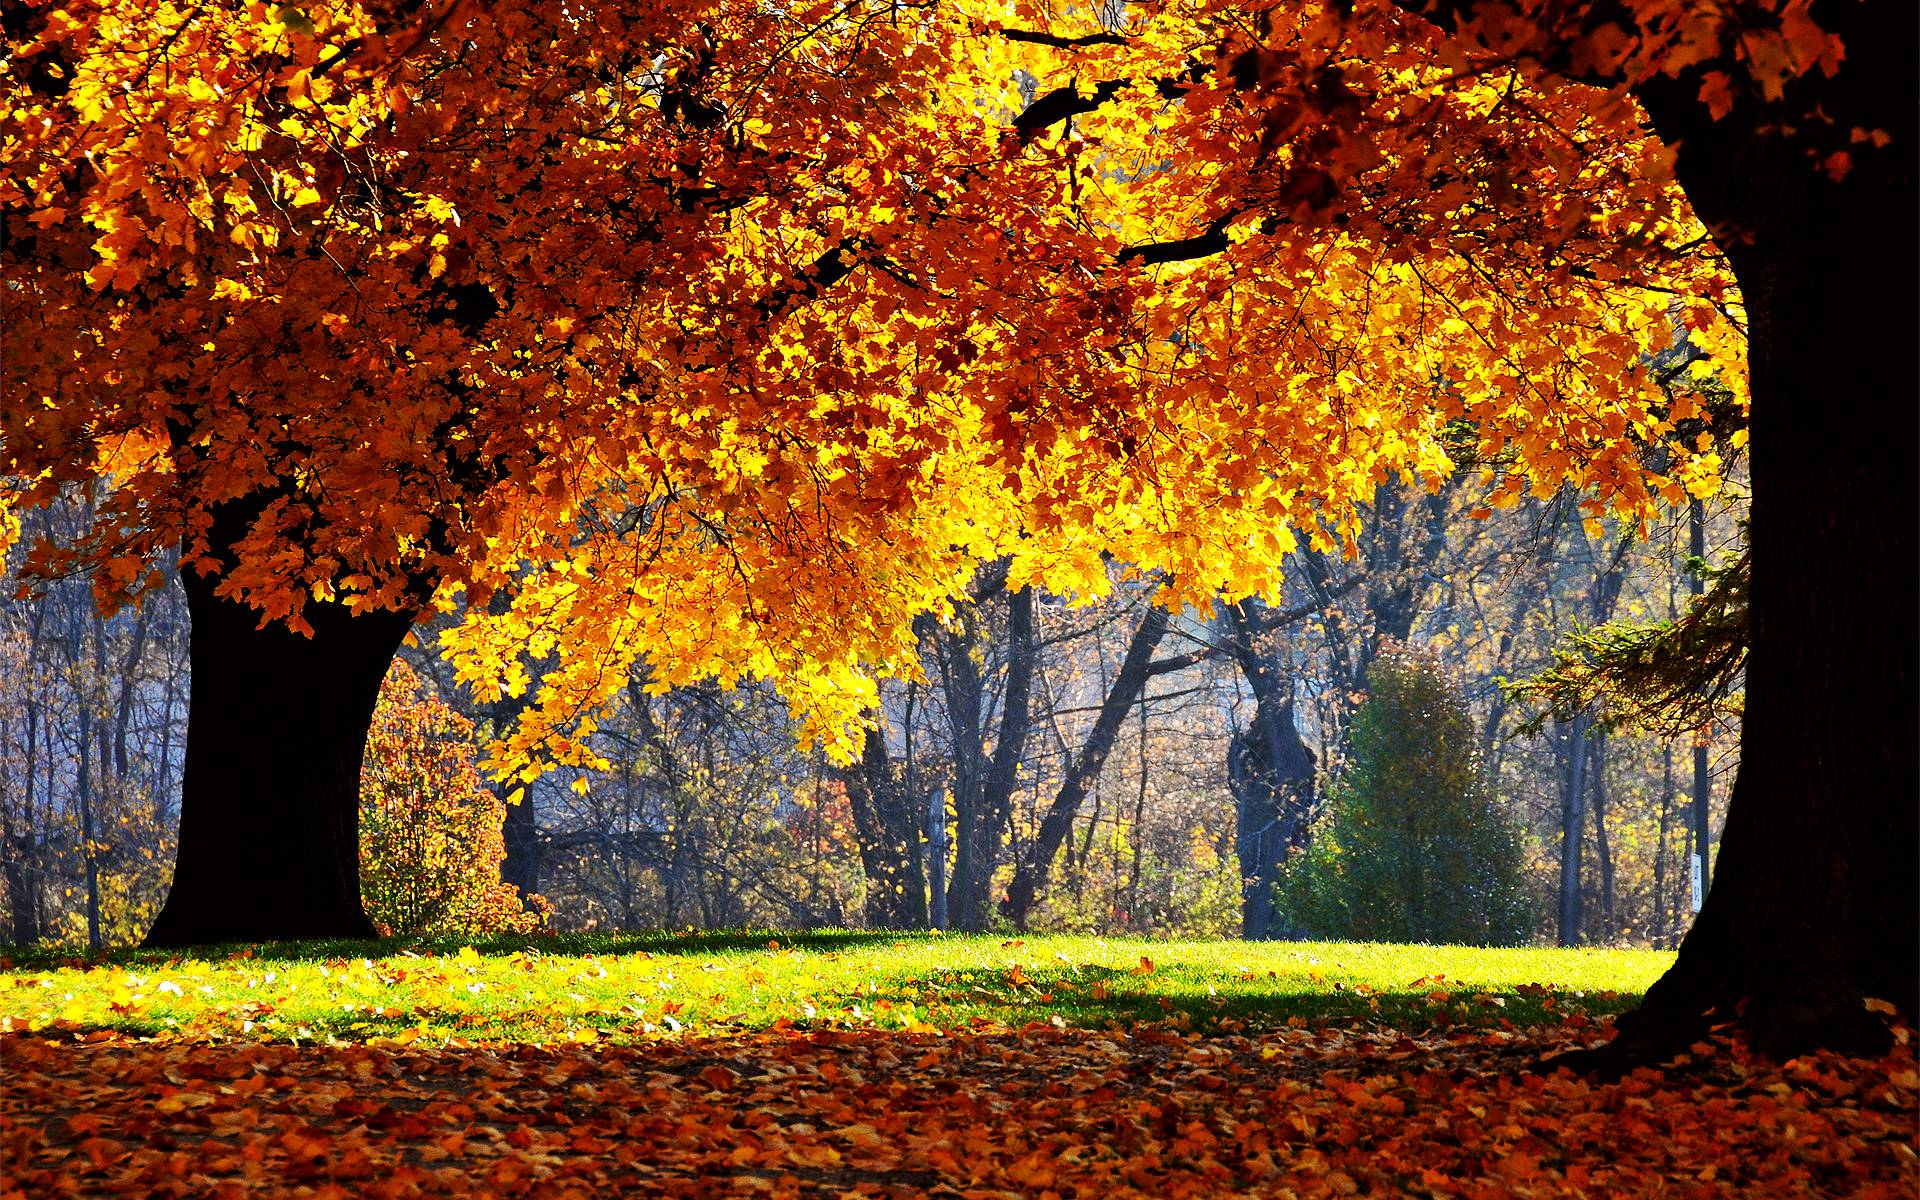 fall foliage wallpapers for desktop – 1920×1200 High Definition